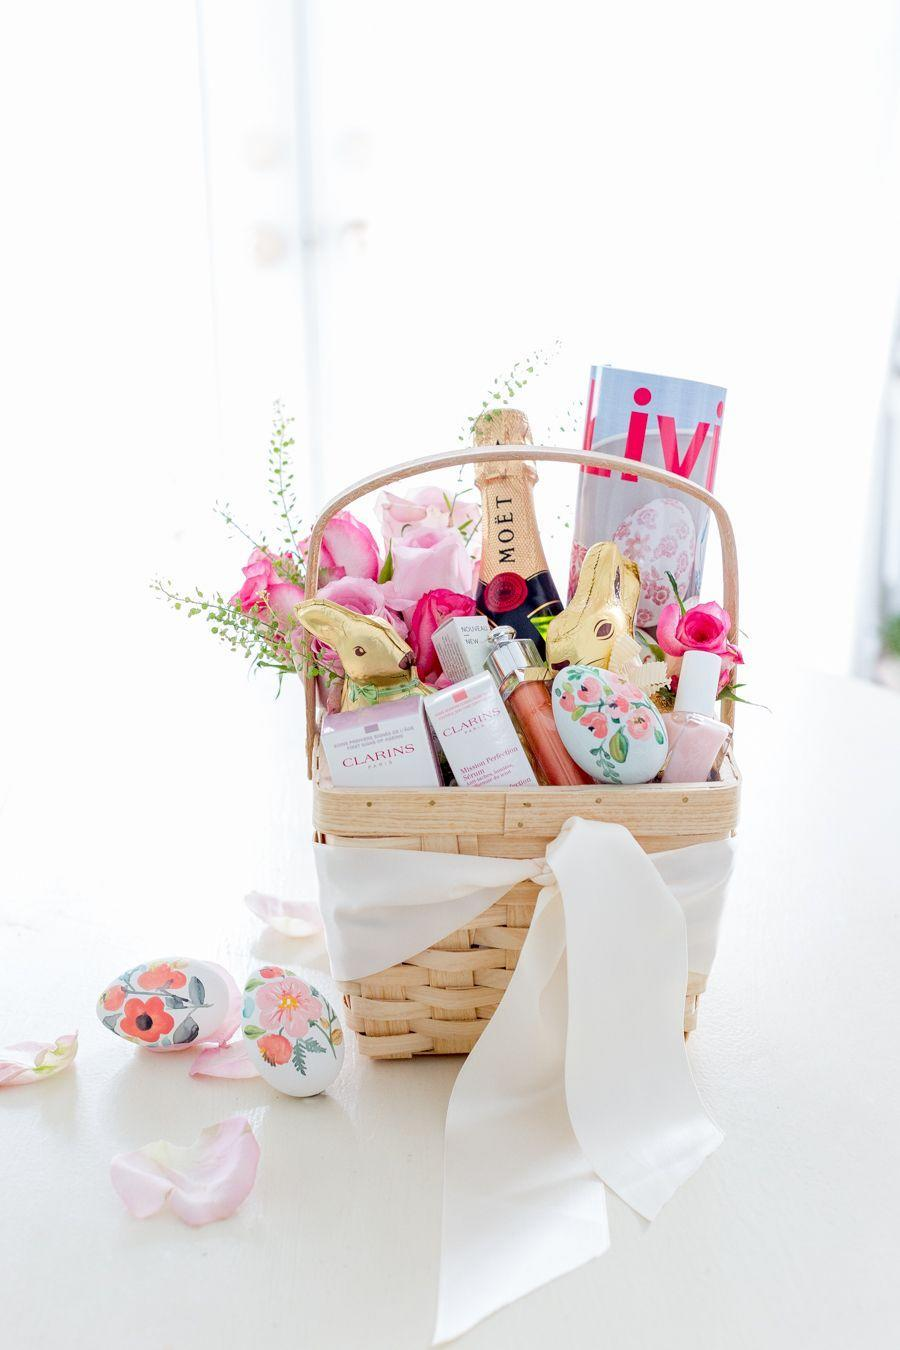 "<p>Short on time? Add a beautiful satin ribbon to a plain basket, fill with indulgences like beauty products and champagne, then fleck with some fresh flowers. </p><p>Get the tutorial at <a href=""https://www.craftberrybush.com/2017/04/grown-up-easter-basket.html"" rel=""nofollow noopener"" target=""_blank"" data-ylk=""slk:Craftberry Bush."" class=""link rapid-noclick-resp"">Craftberry Bush.</a></p><p><a class=""link rapid-noclick-resp"" href=""https://www.amazon.com/VATIN-Double-Solid-Satin-Ribbon/dp/B072P5R4N1/?tag=syn-yahoo-20&ascsubtag=%5Bartid%7C10072.g.30506642%5Bsrc%7Cyahoo-us"" rel=""nofollow noopener"" target=""_blank"" data-ylk=""slk:SHOP SATIN RIBBON"">SHOP SATIN RIBBON</a></p>"